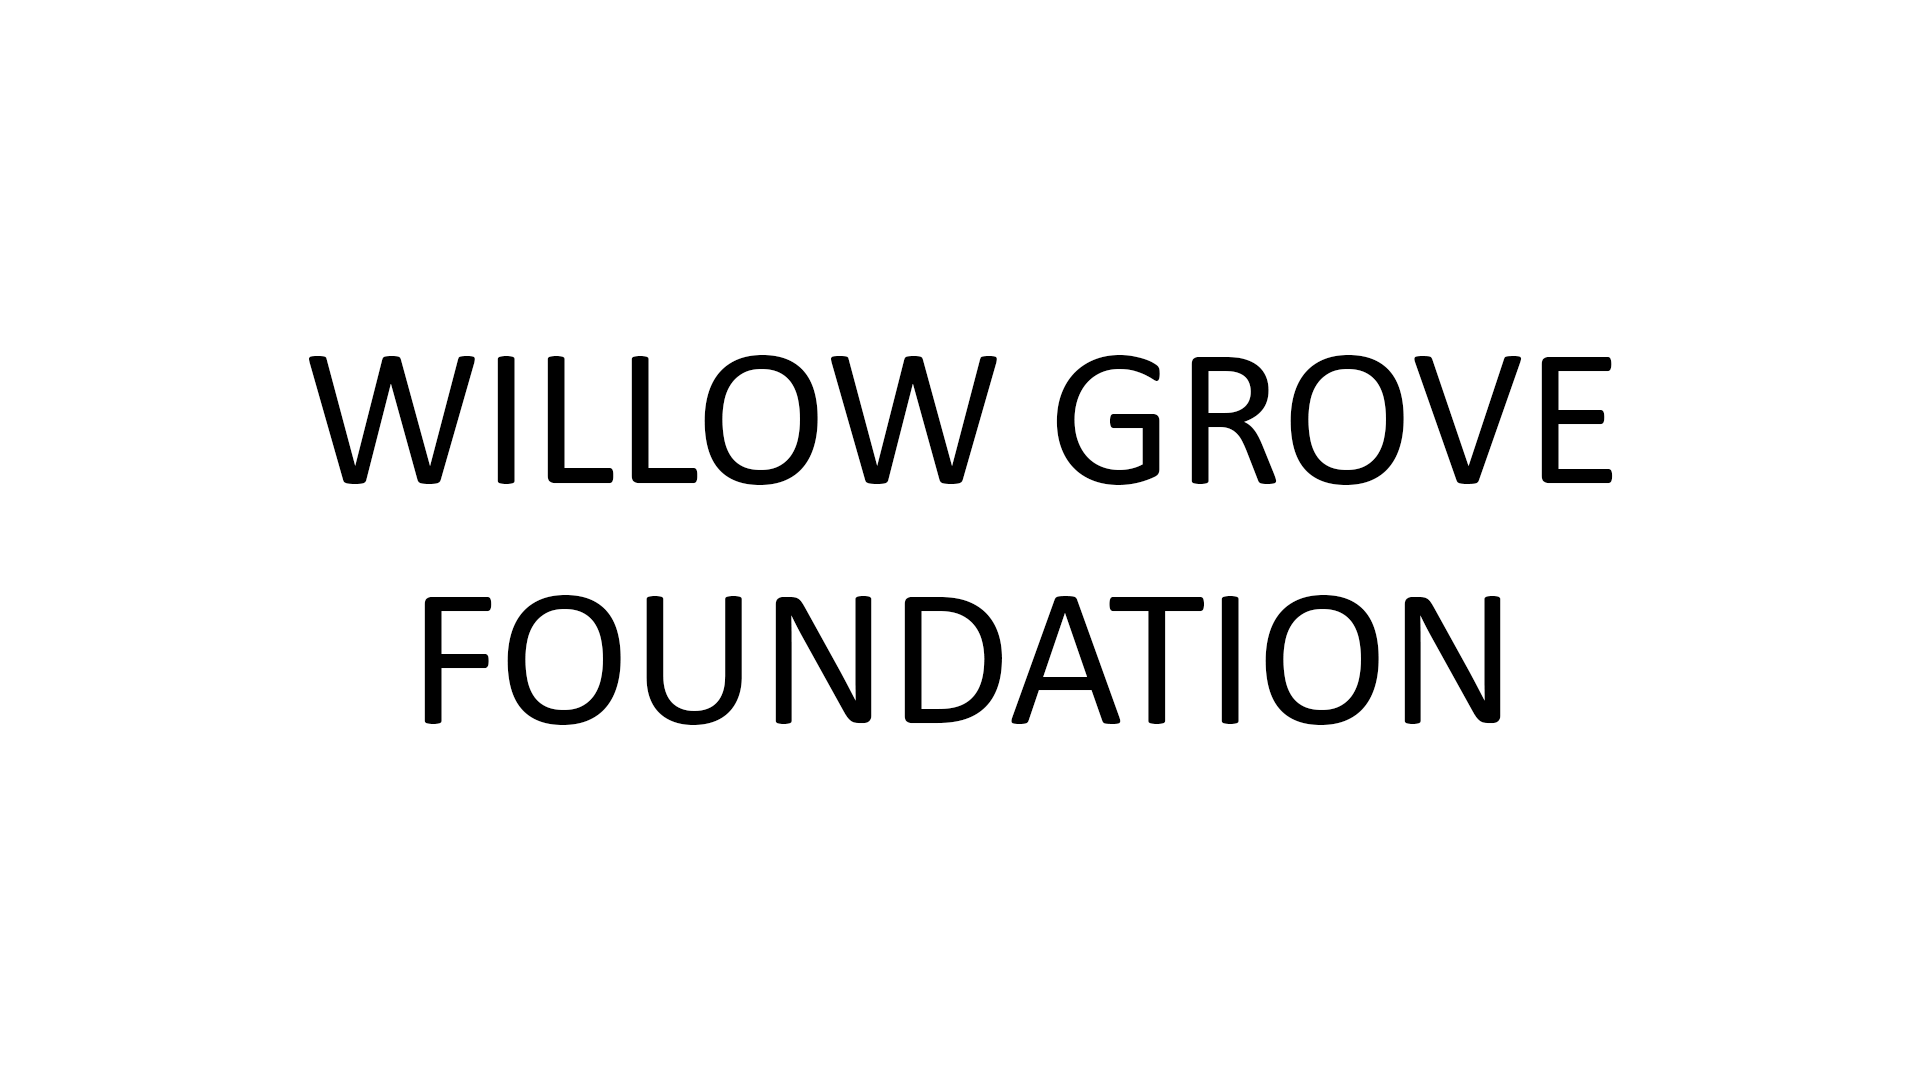 willow grove foundation logo.png